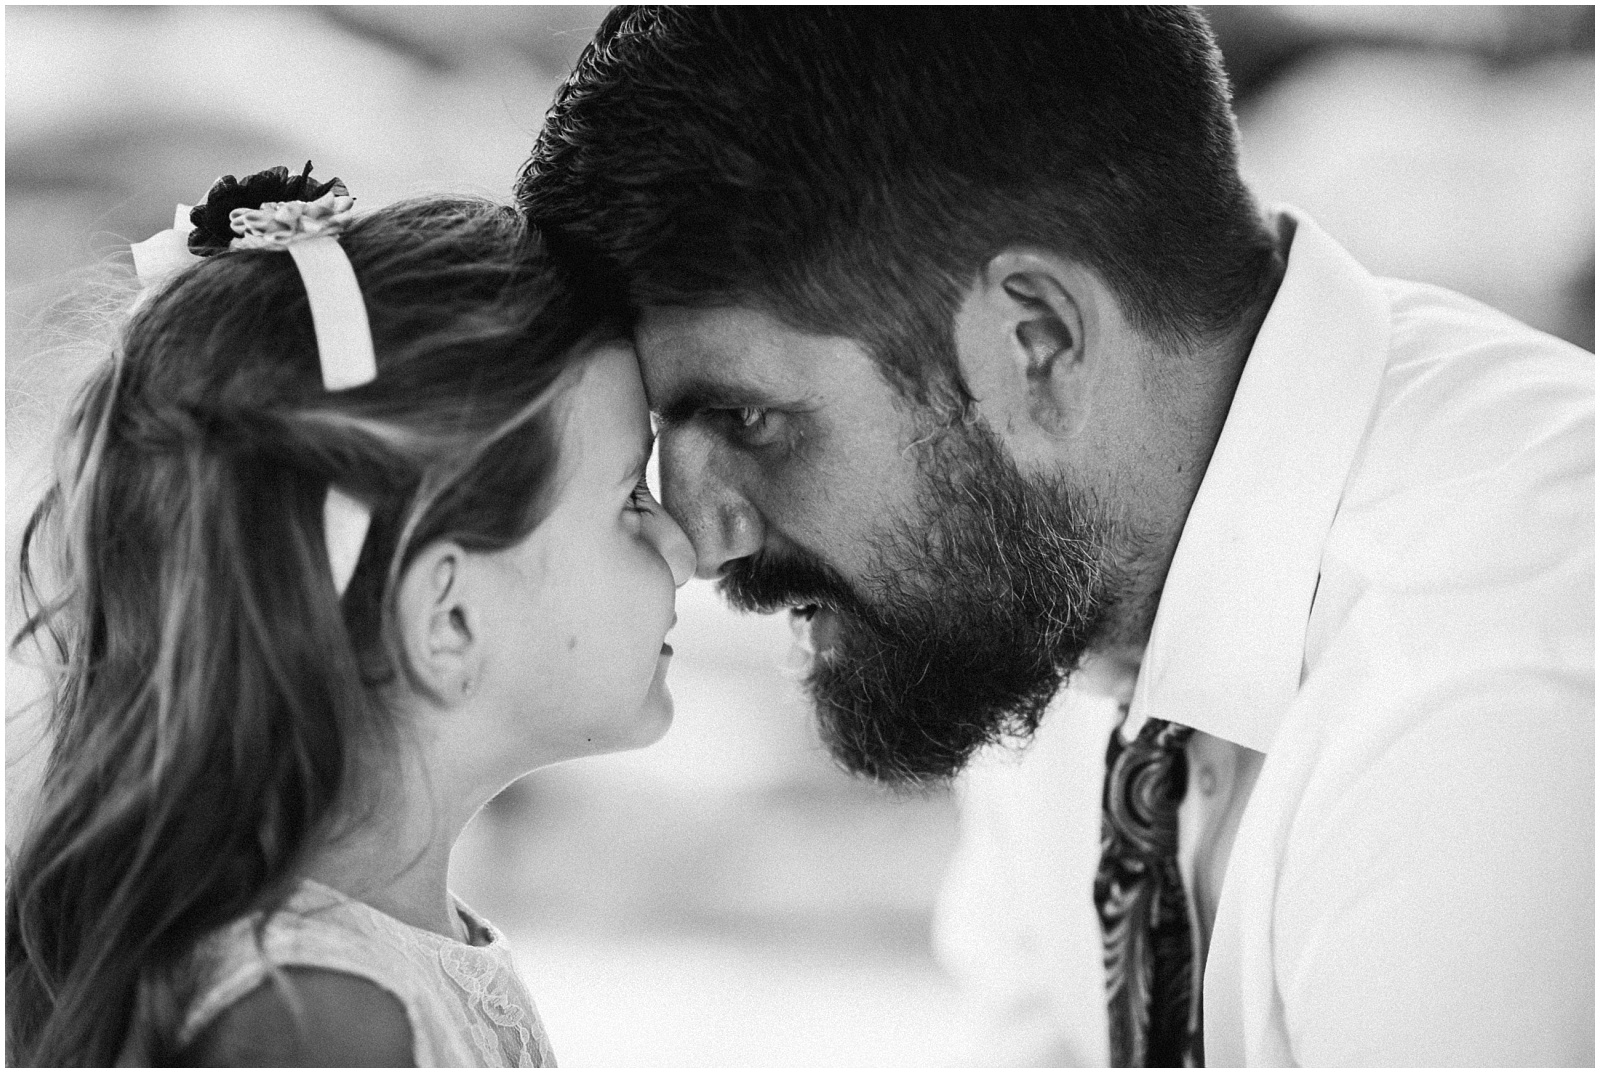 Father and daughter looking at each other